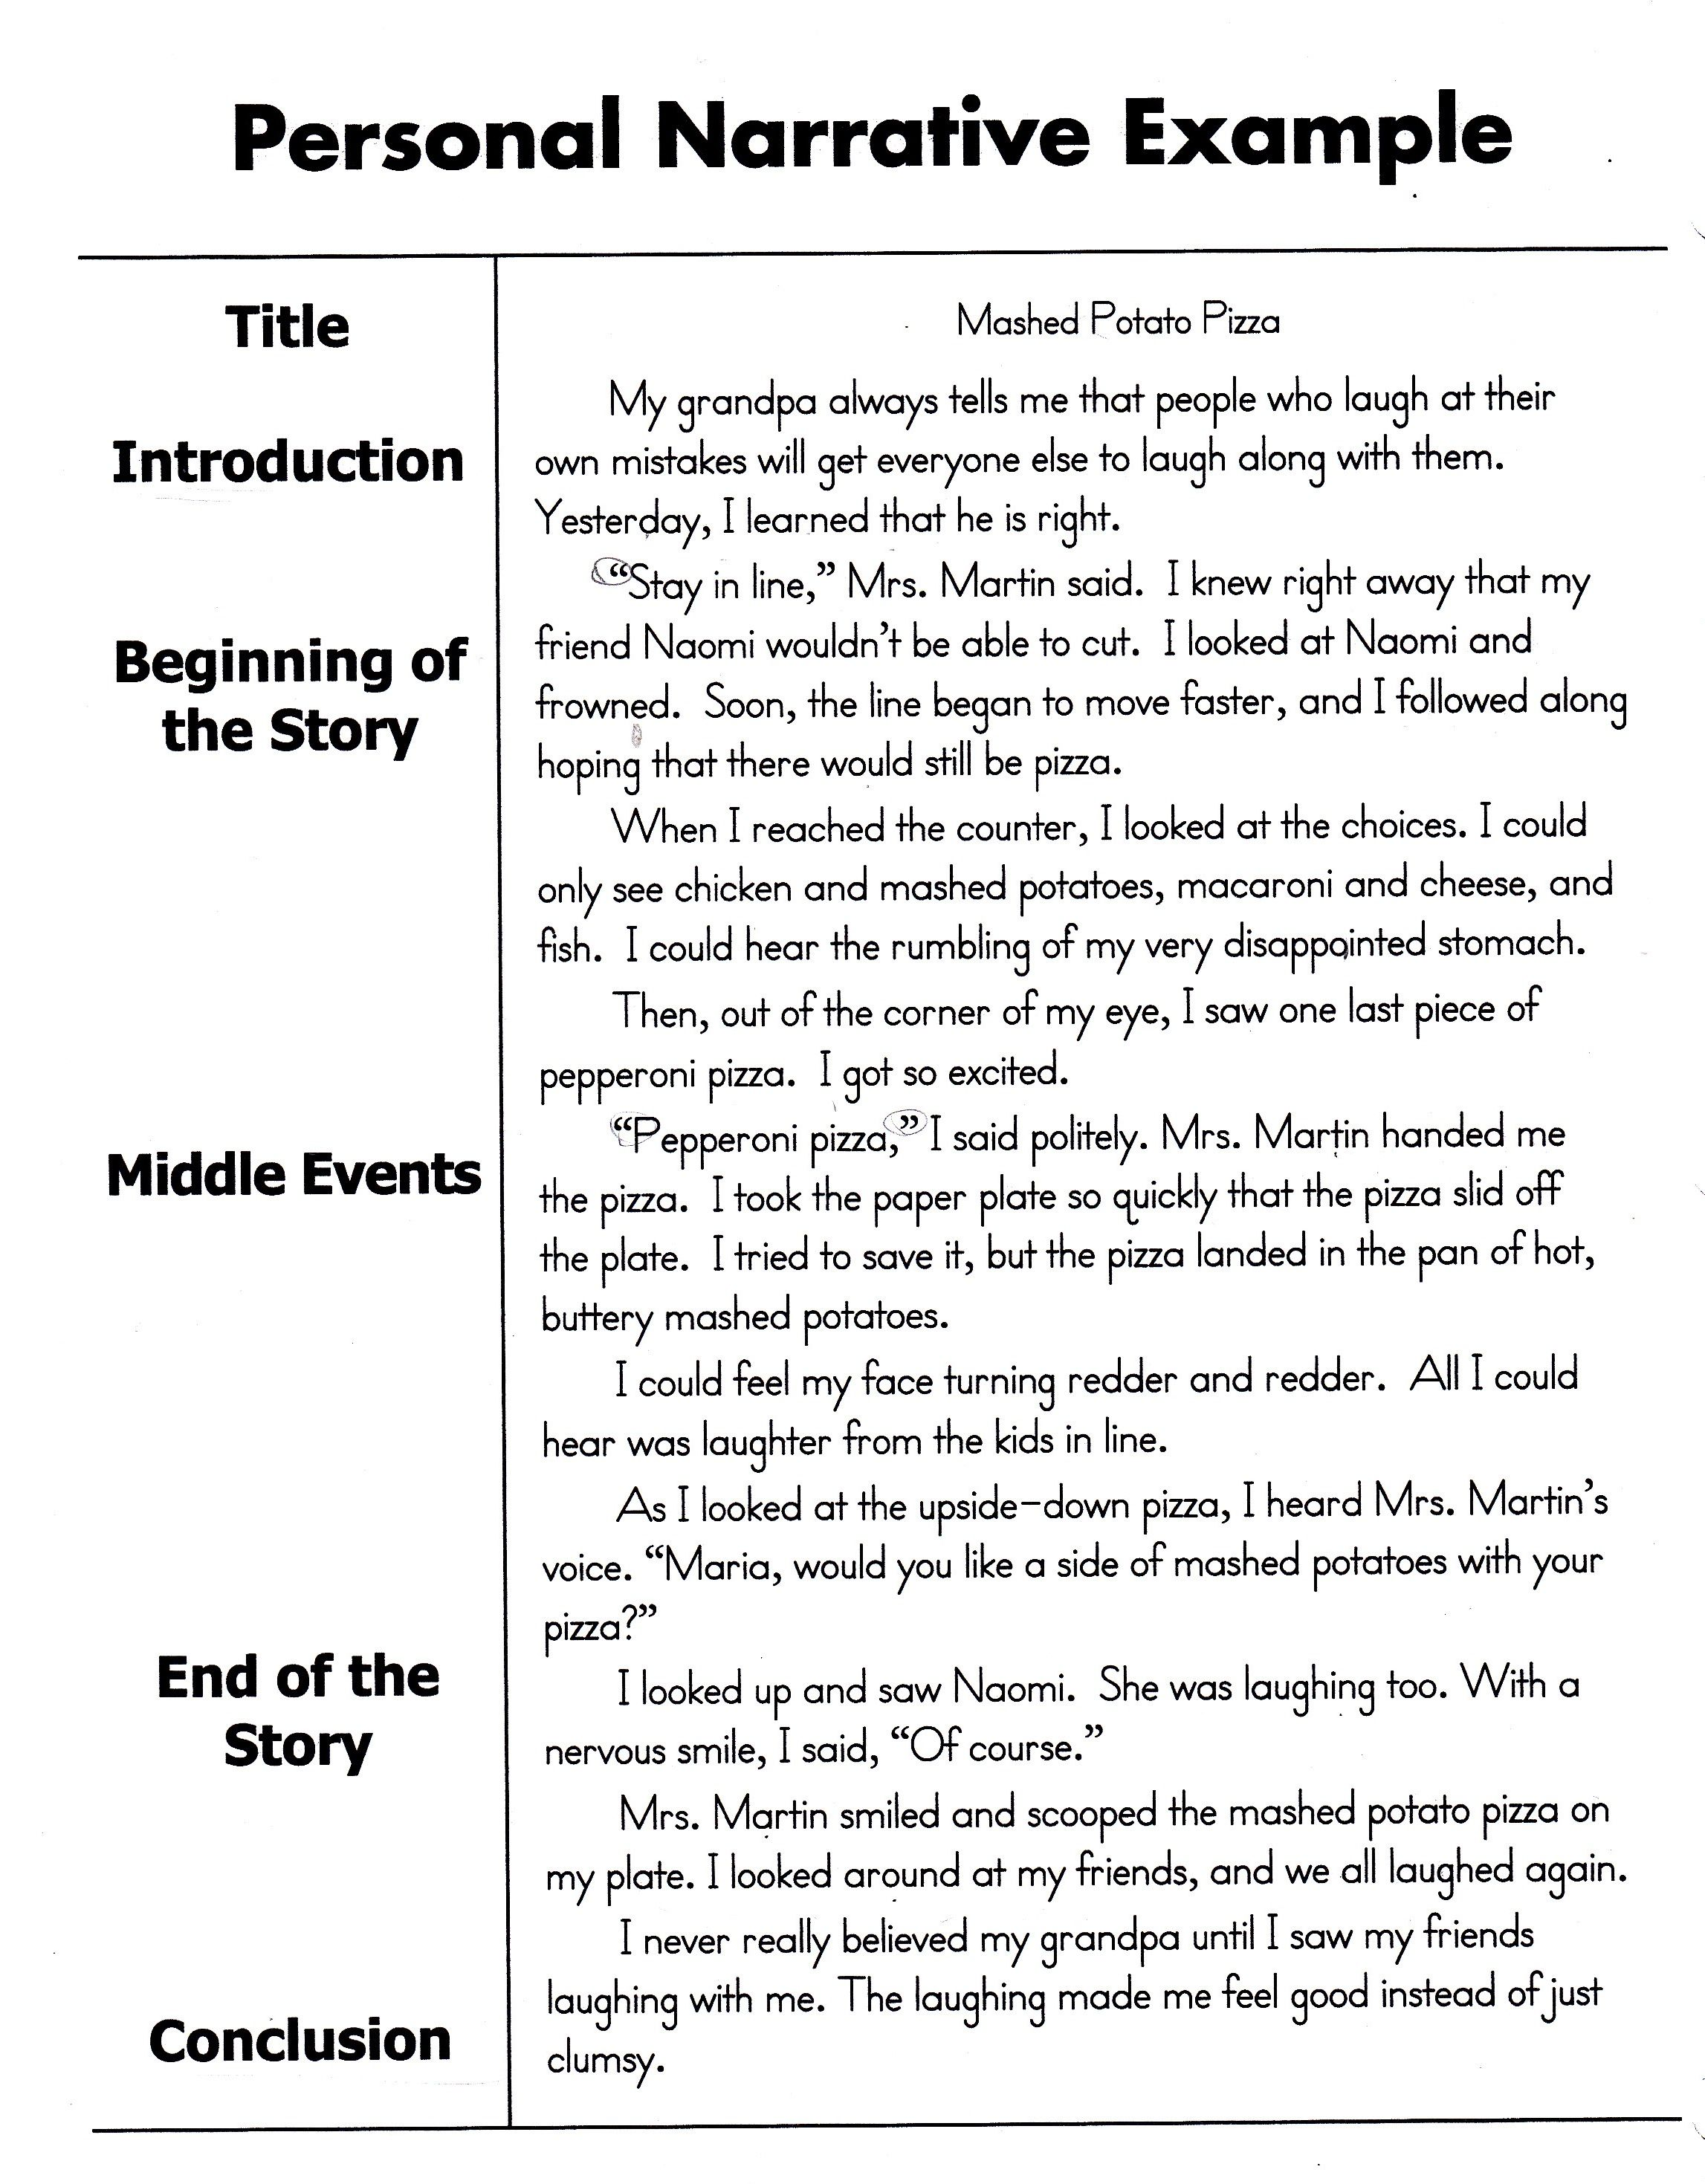 Personal Narrative Examples 8Th Grade